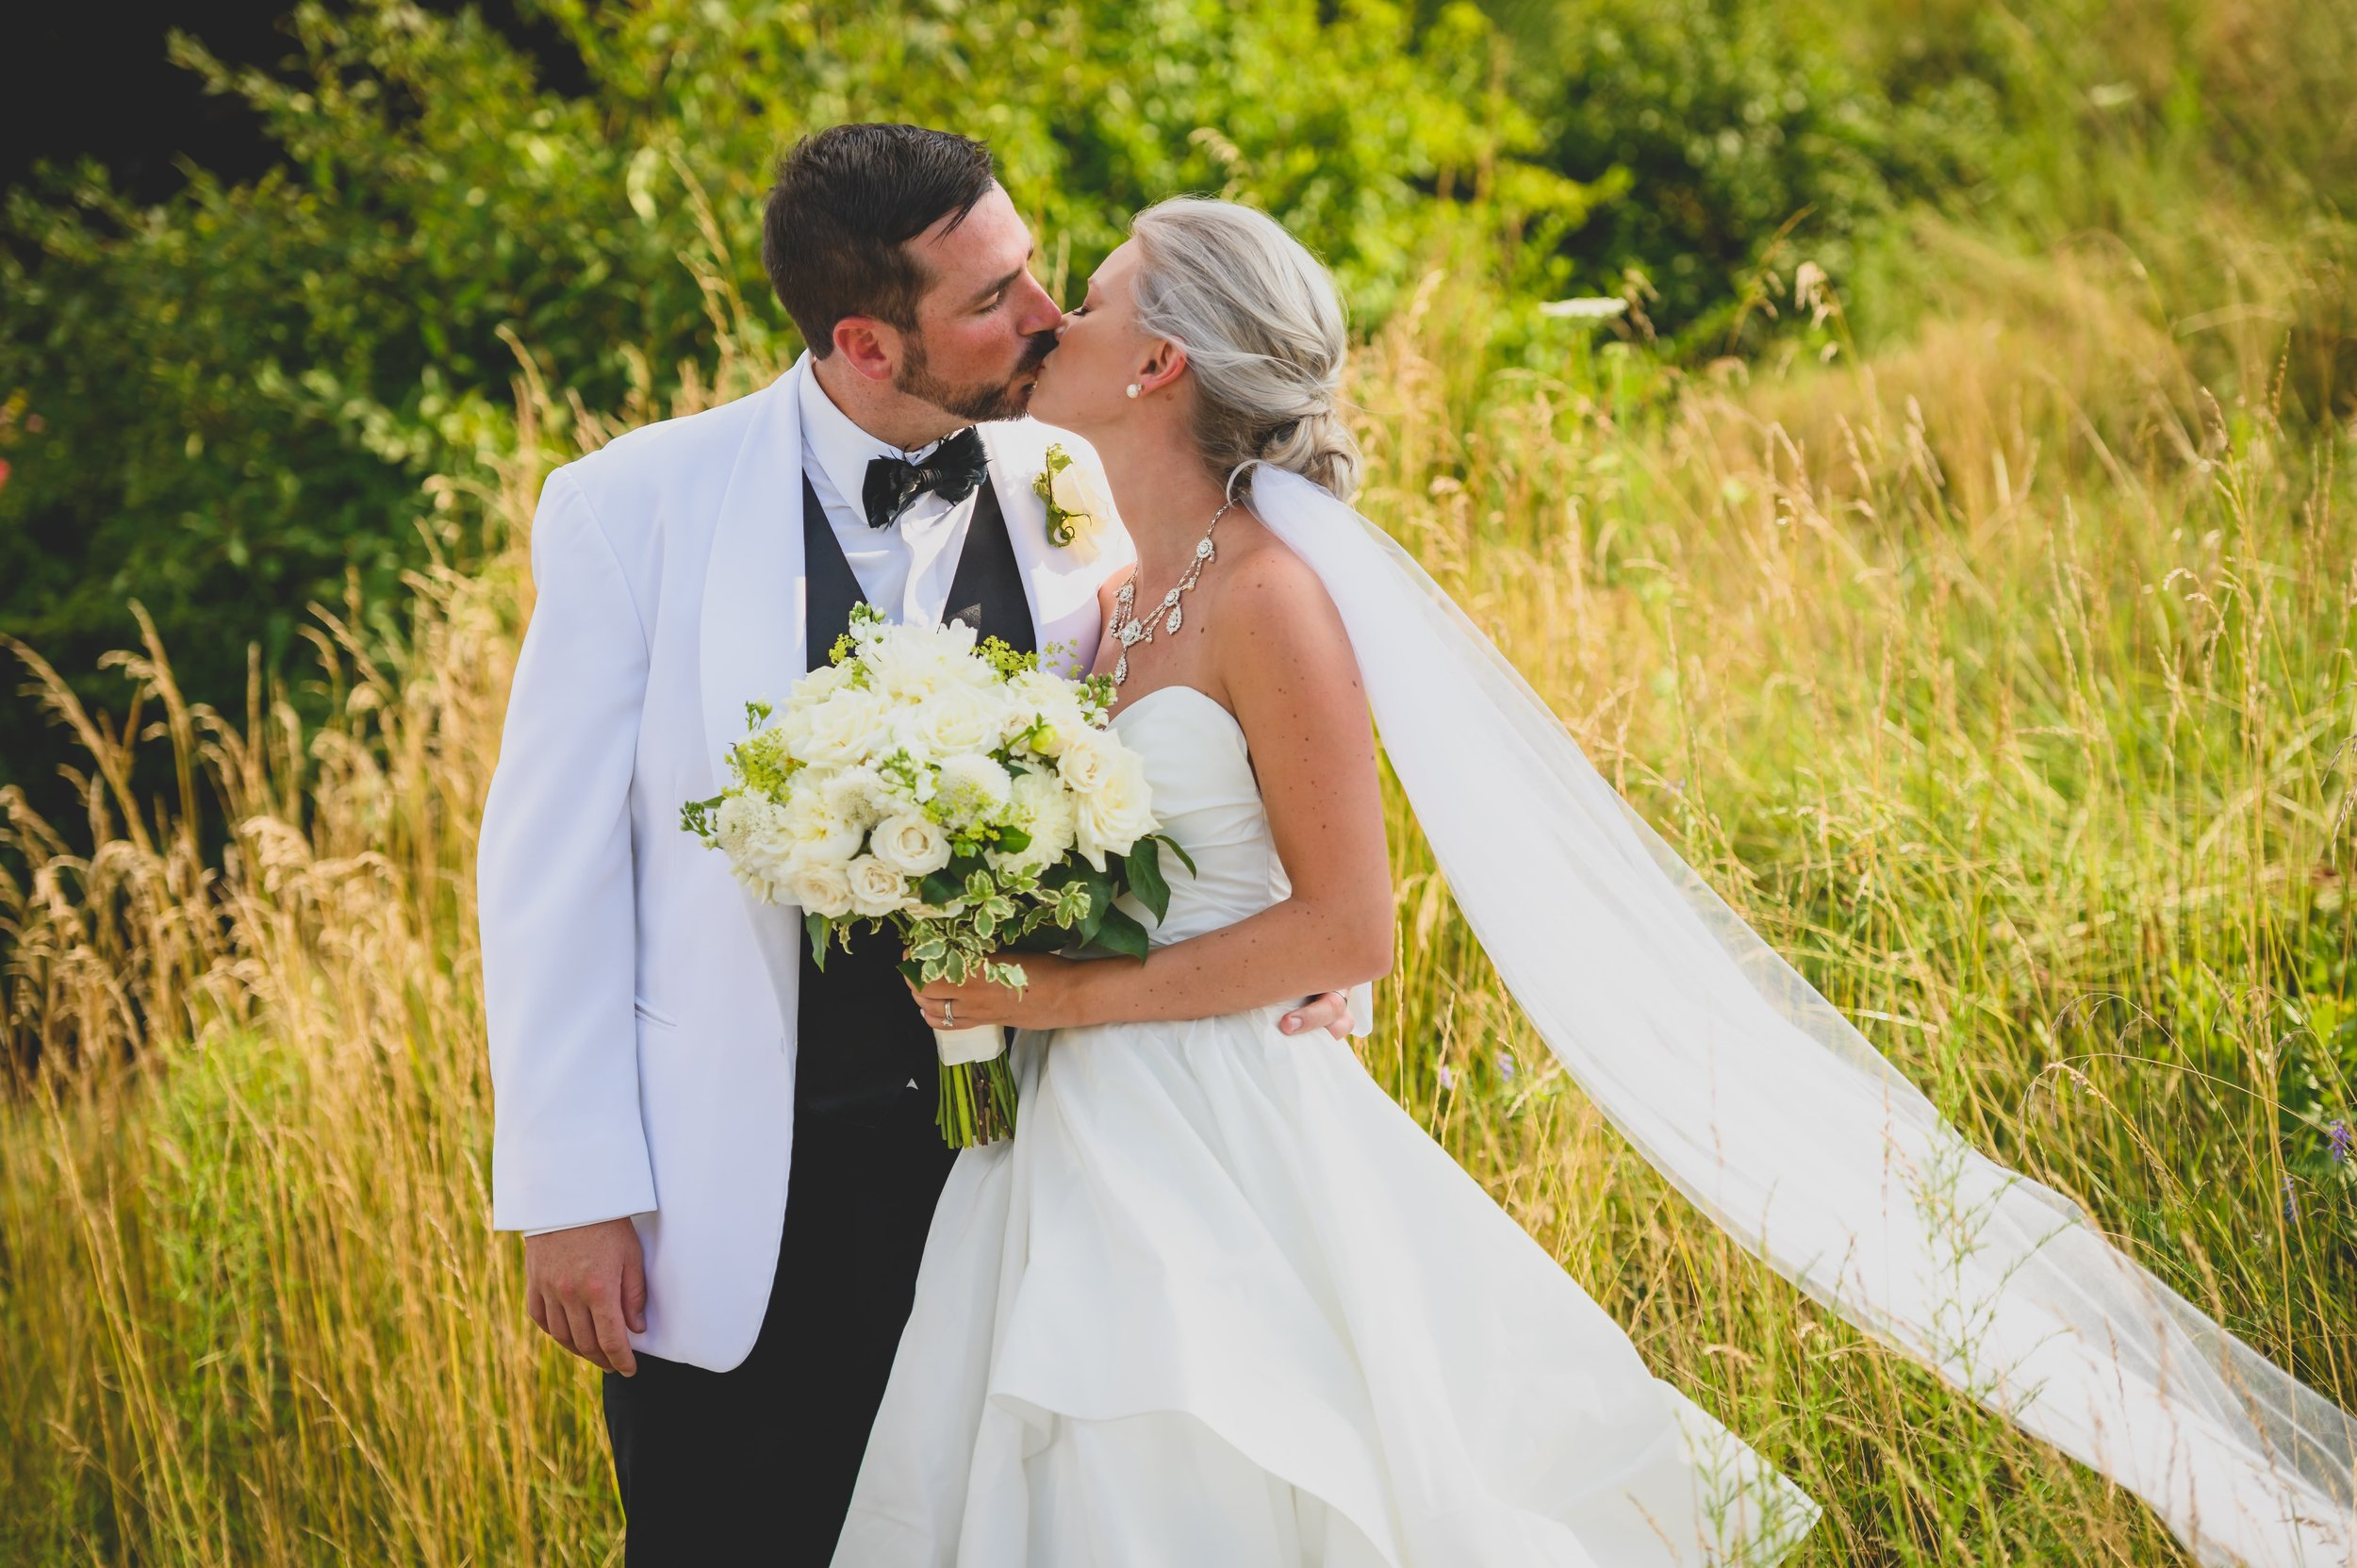 A groom in a white tuxedo kissing his bride in front of stalks of grain.